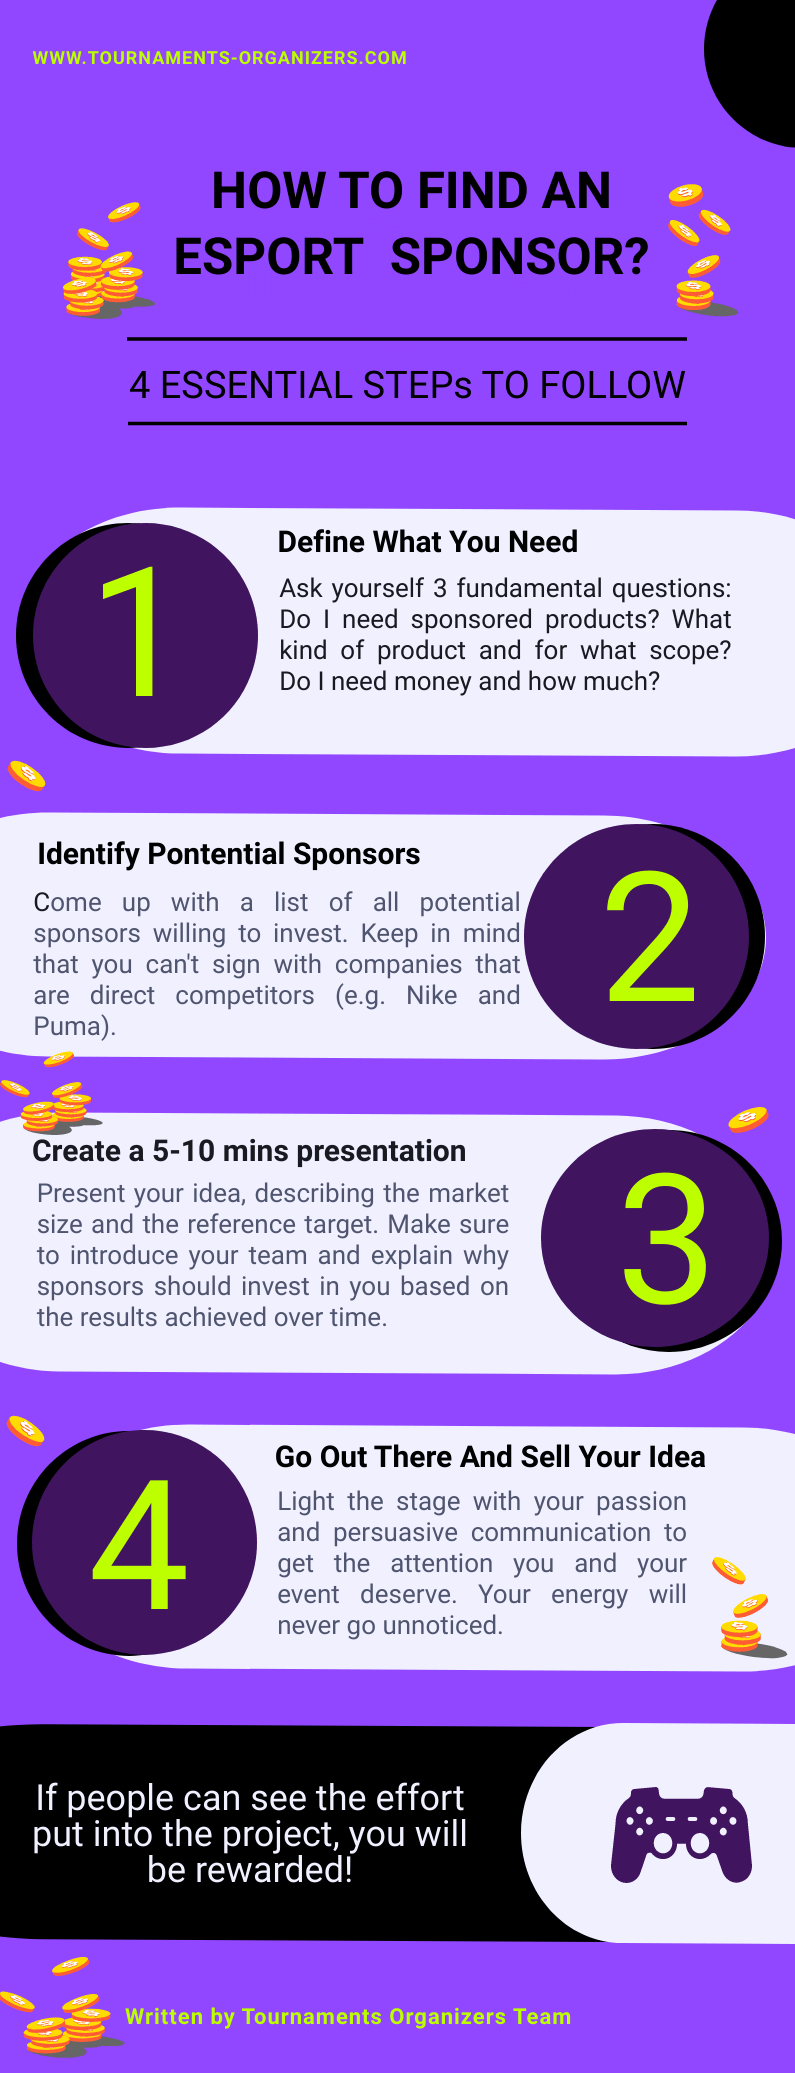 How to find esports sponsors: 4 steps to take to get your esports tournament sponsored Define your needs what kind of investment are you looking for? Generally speaking, it's easier to have sponsors provide discount codes and free products to be given out at your tournament to your esports community. 2. Identify potential sponsors Come up with a list of all the sponsors you could potentially ask for investments. Keep in mind that you can't sign with companies that have the same business. 3.Create a presentation. Prepare a 5-10 minute powerpoint and try to follow some guidelines: Start by presenting the idea, describe the market size and Who is the reference target. Right after, Present the team, try to Explain why sponsors should invest in your idea and finally, Show the results achieved over time. 4.Go out there and sell your idea No one can stop you and your idea from getting the attention you deserve. Go out there and remember that If people can see the effort put into the project, you will be rewarded!